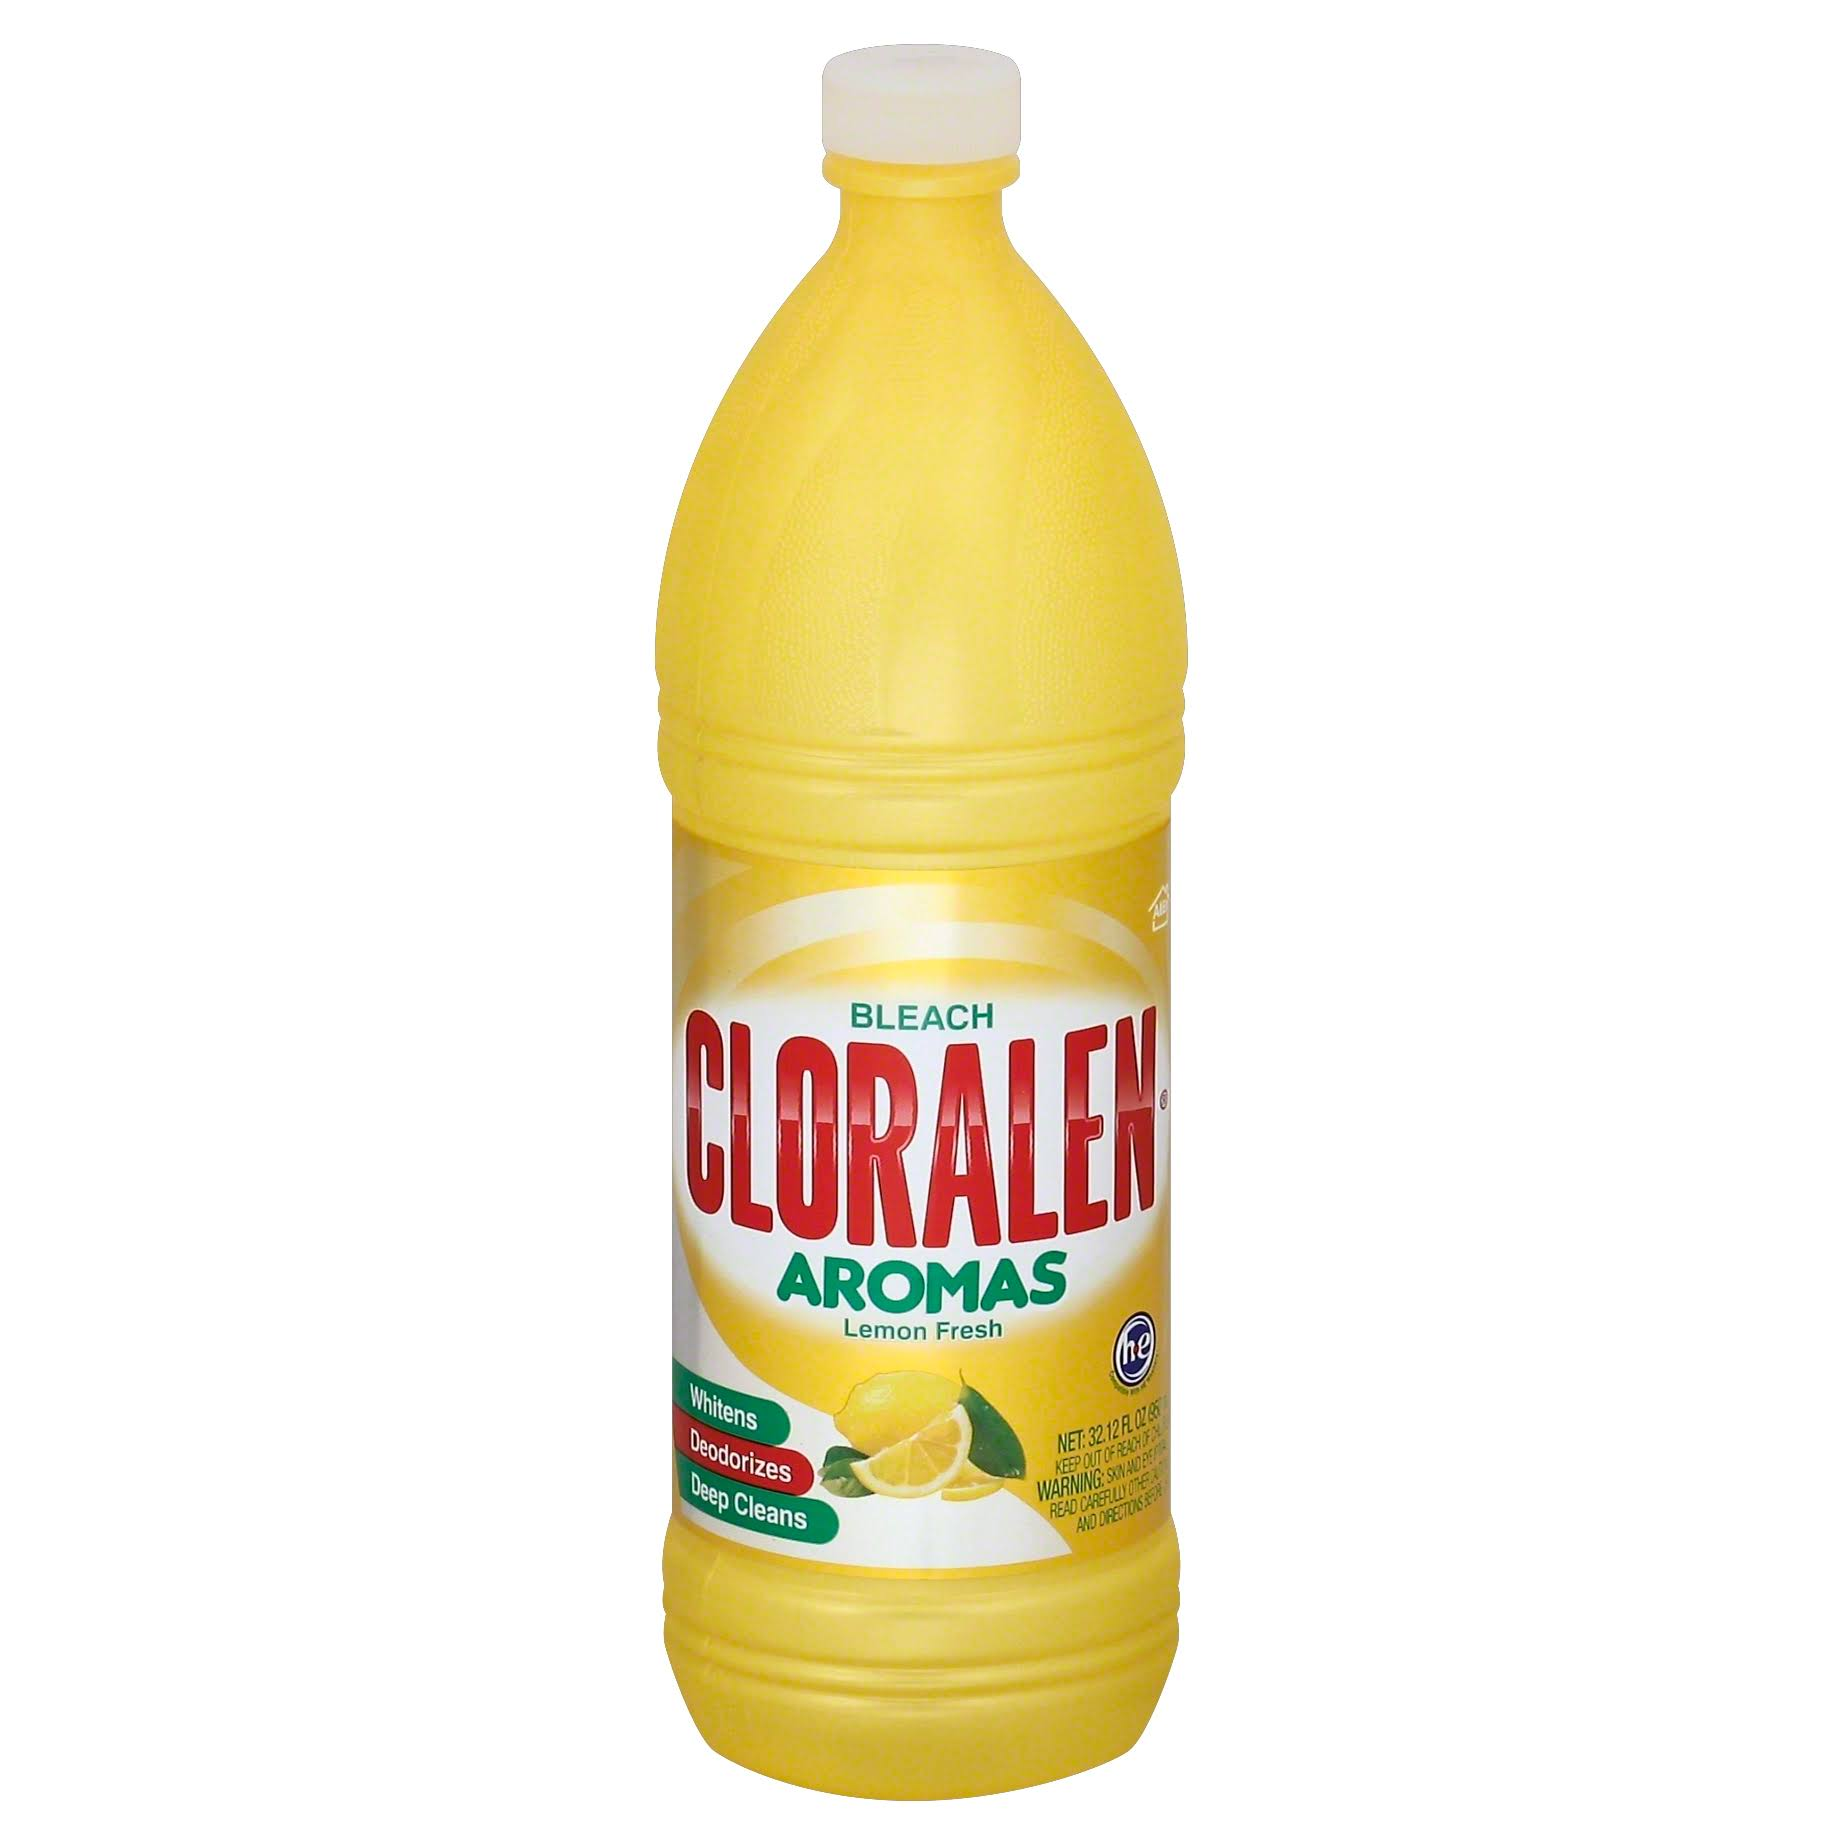 Cloralen Aromas Bleach, Lemon Fresh - 32.12 fl oz